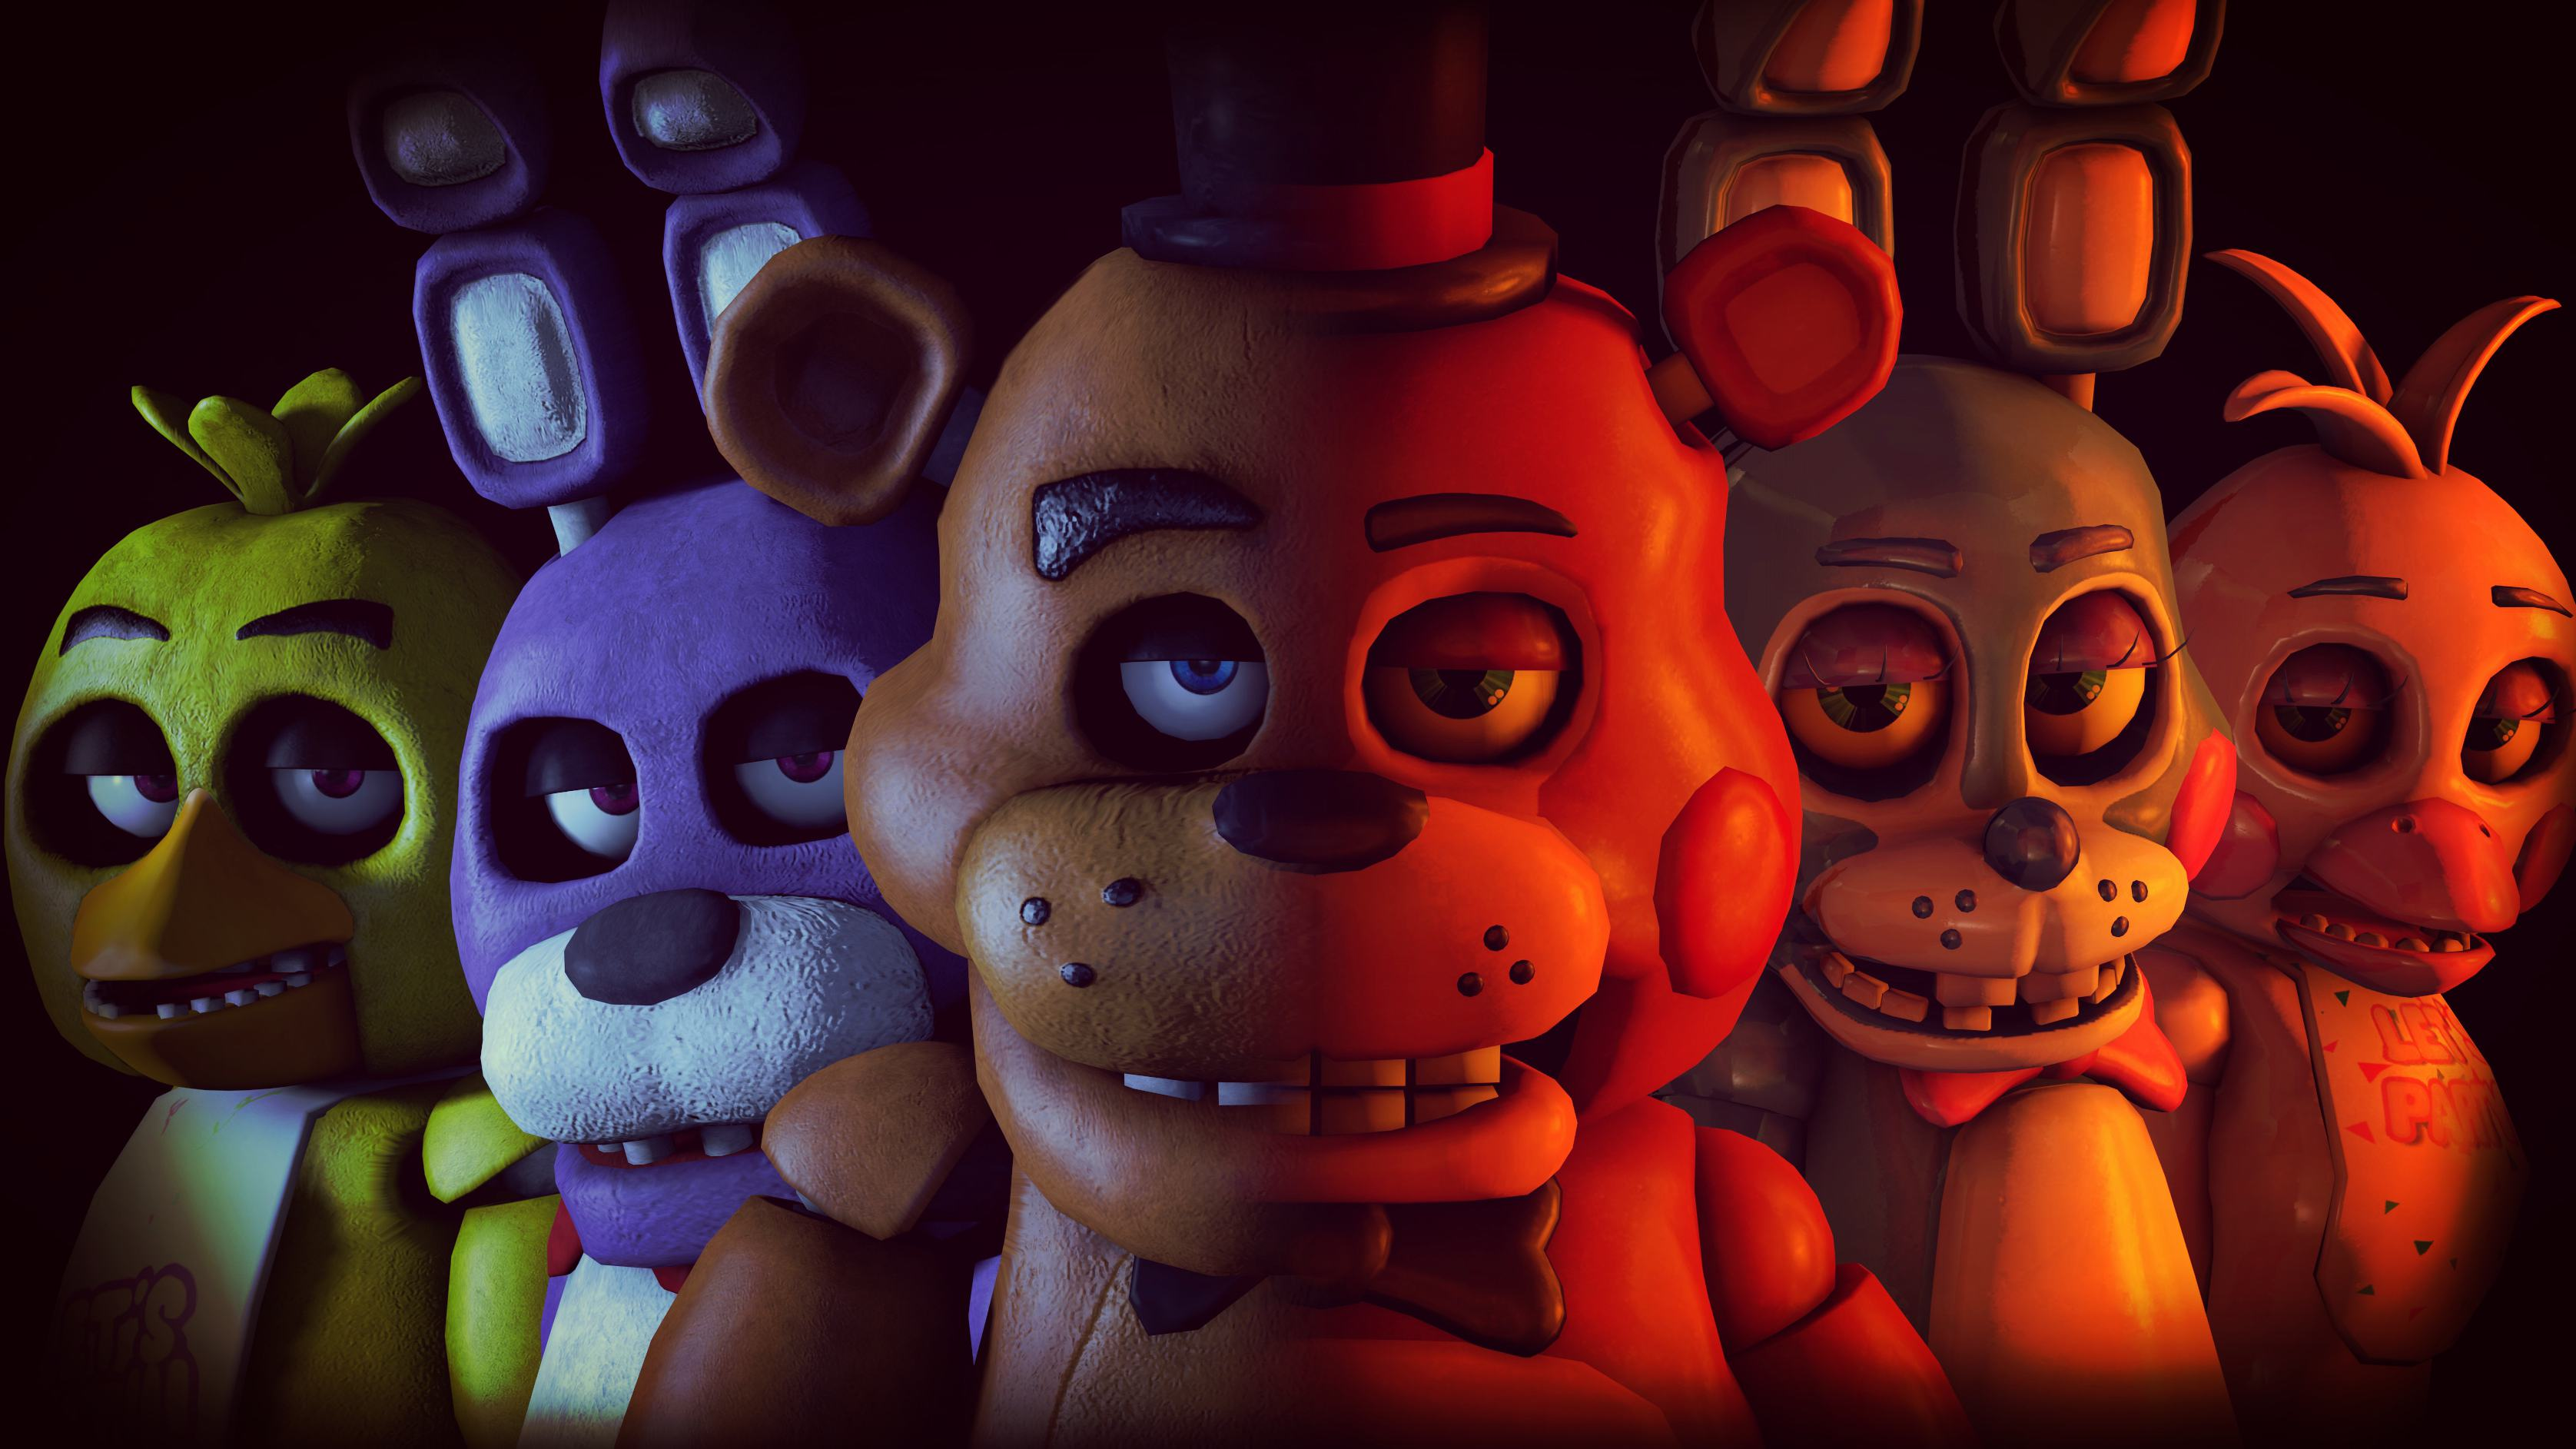 'Five Nights at Freddy's' Creator Confirms Upcoming Movie